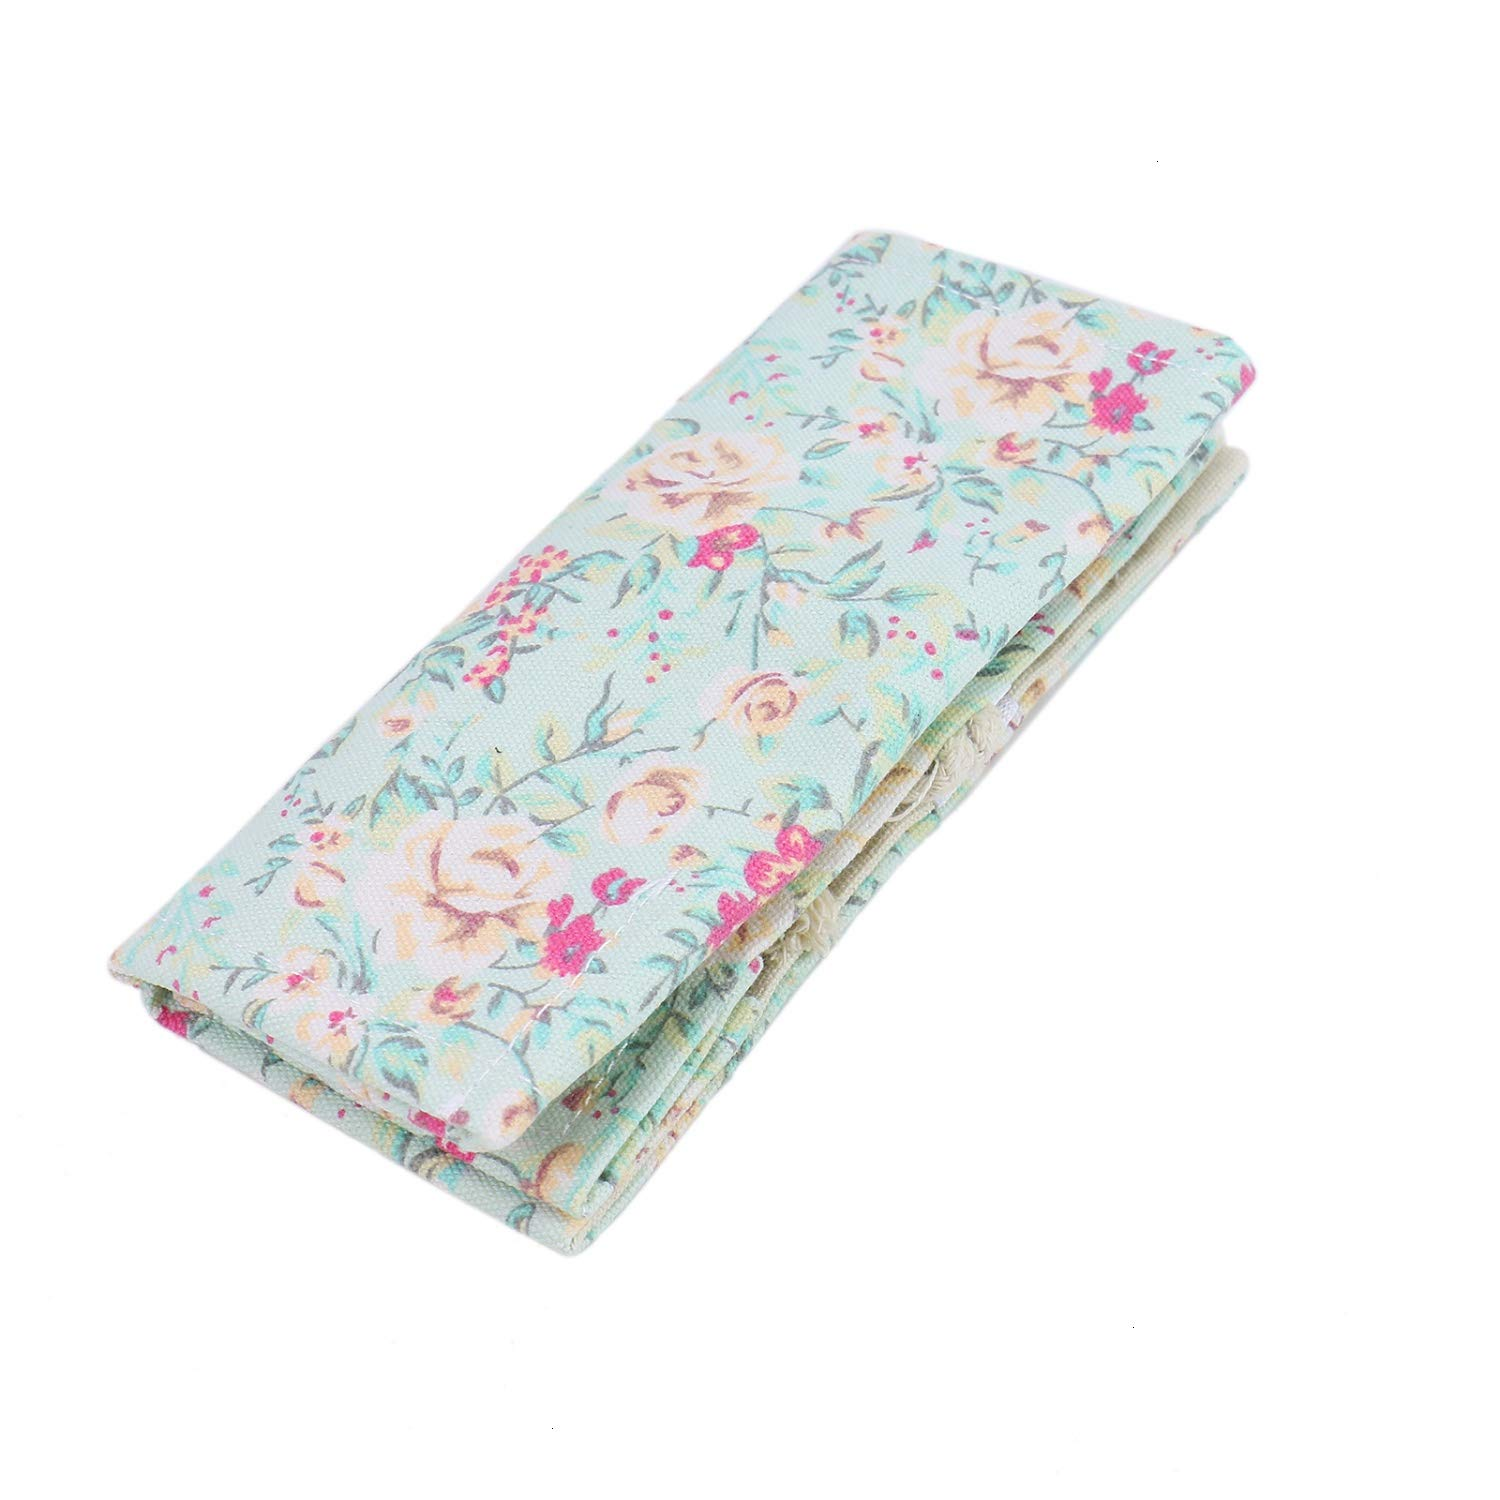 Monrocco Paint Brush Holder 24 Slots Flower Roll Up Pen Holder Canvas Pouch Bag for Artist Travel Drawing